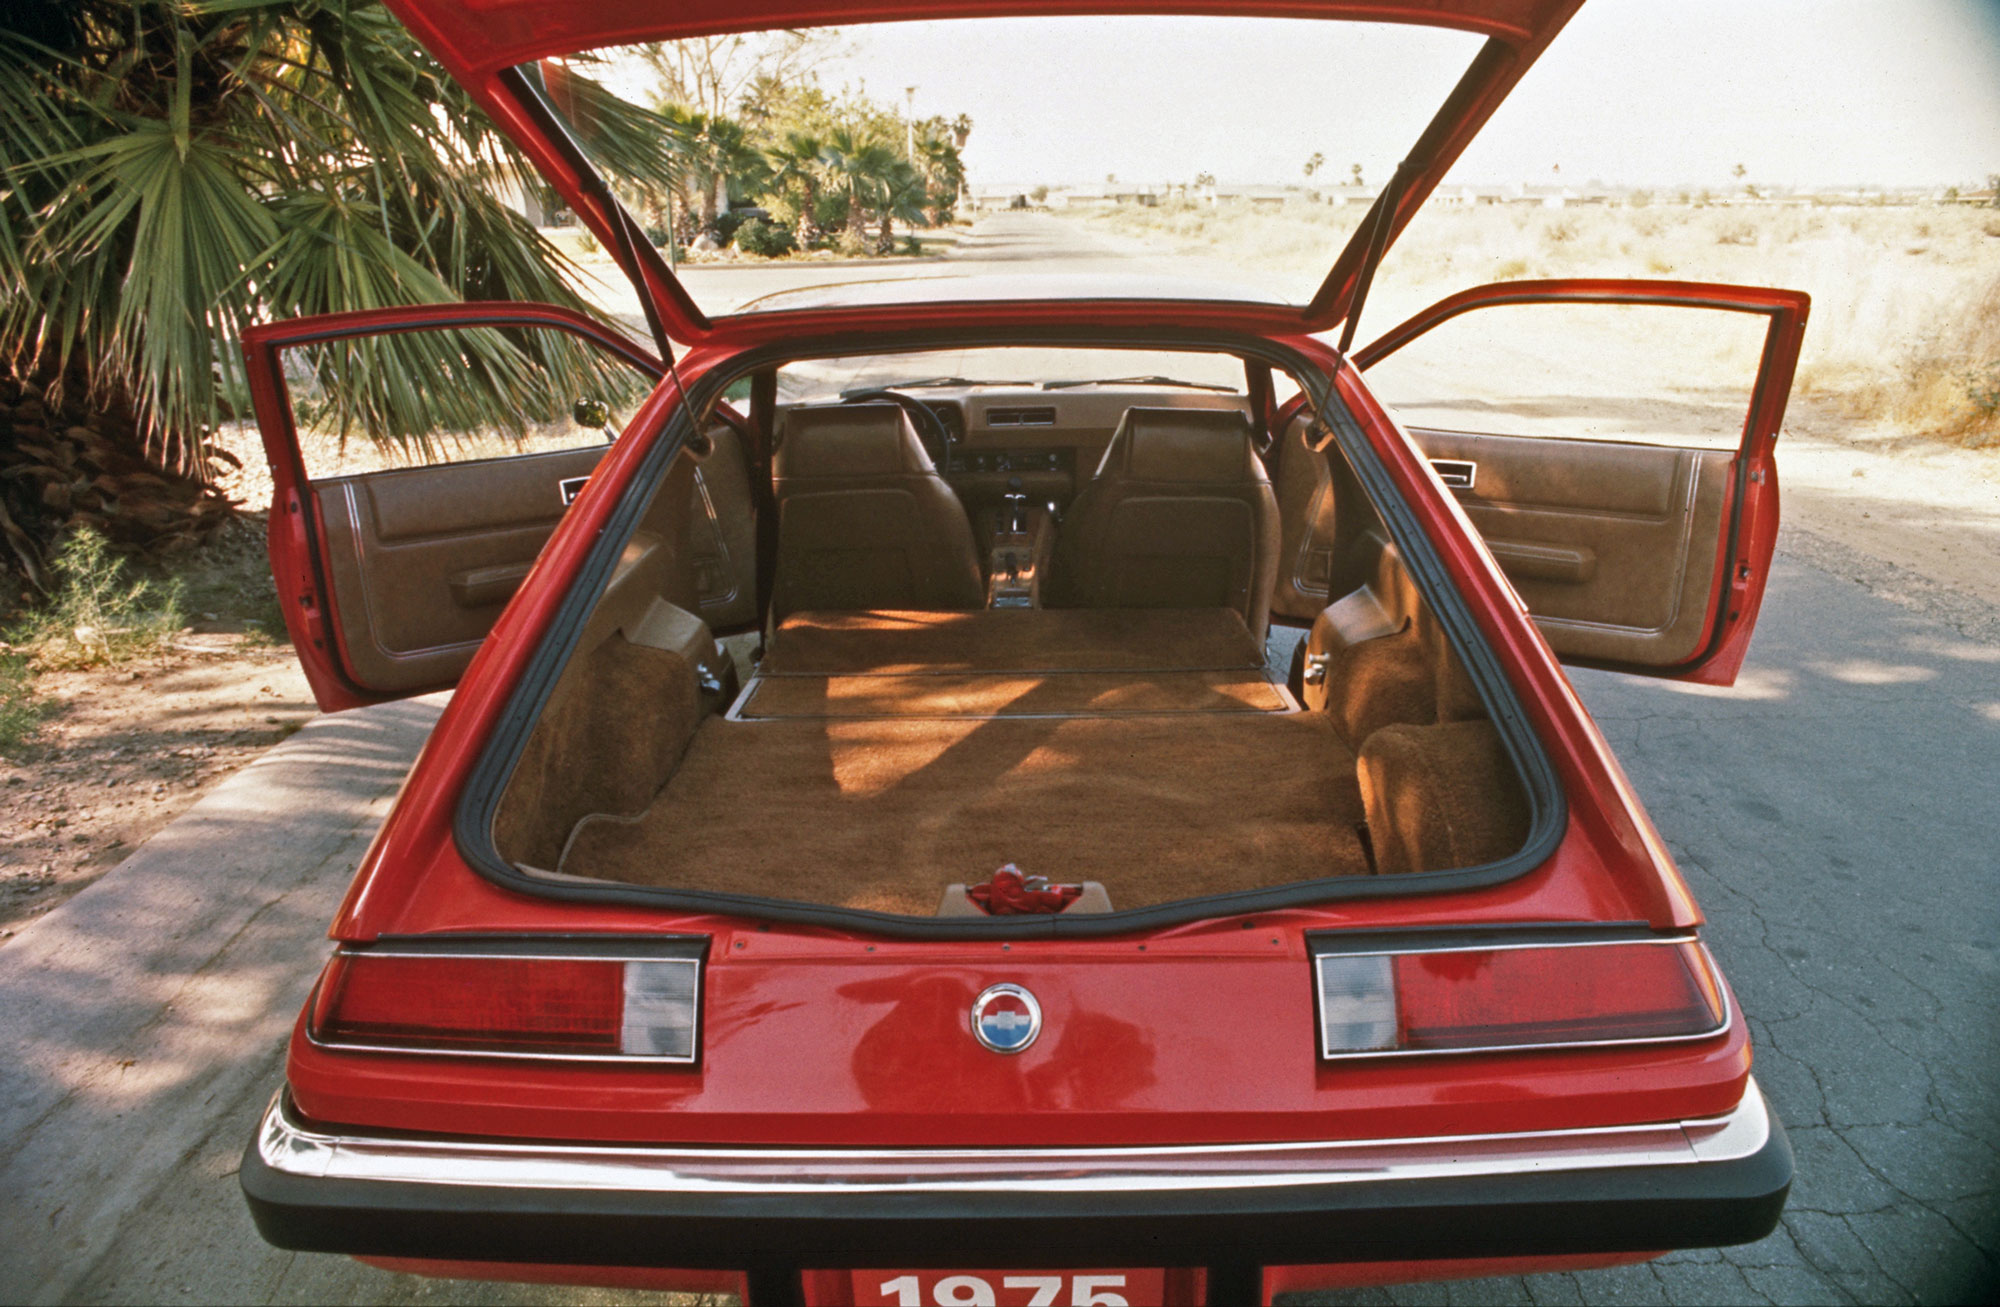 rear interior of Chevy Monza